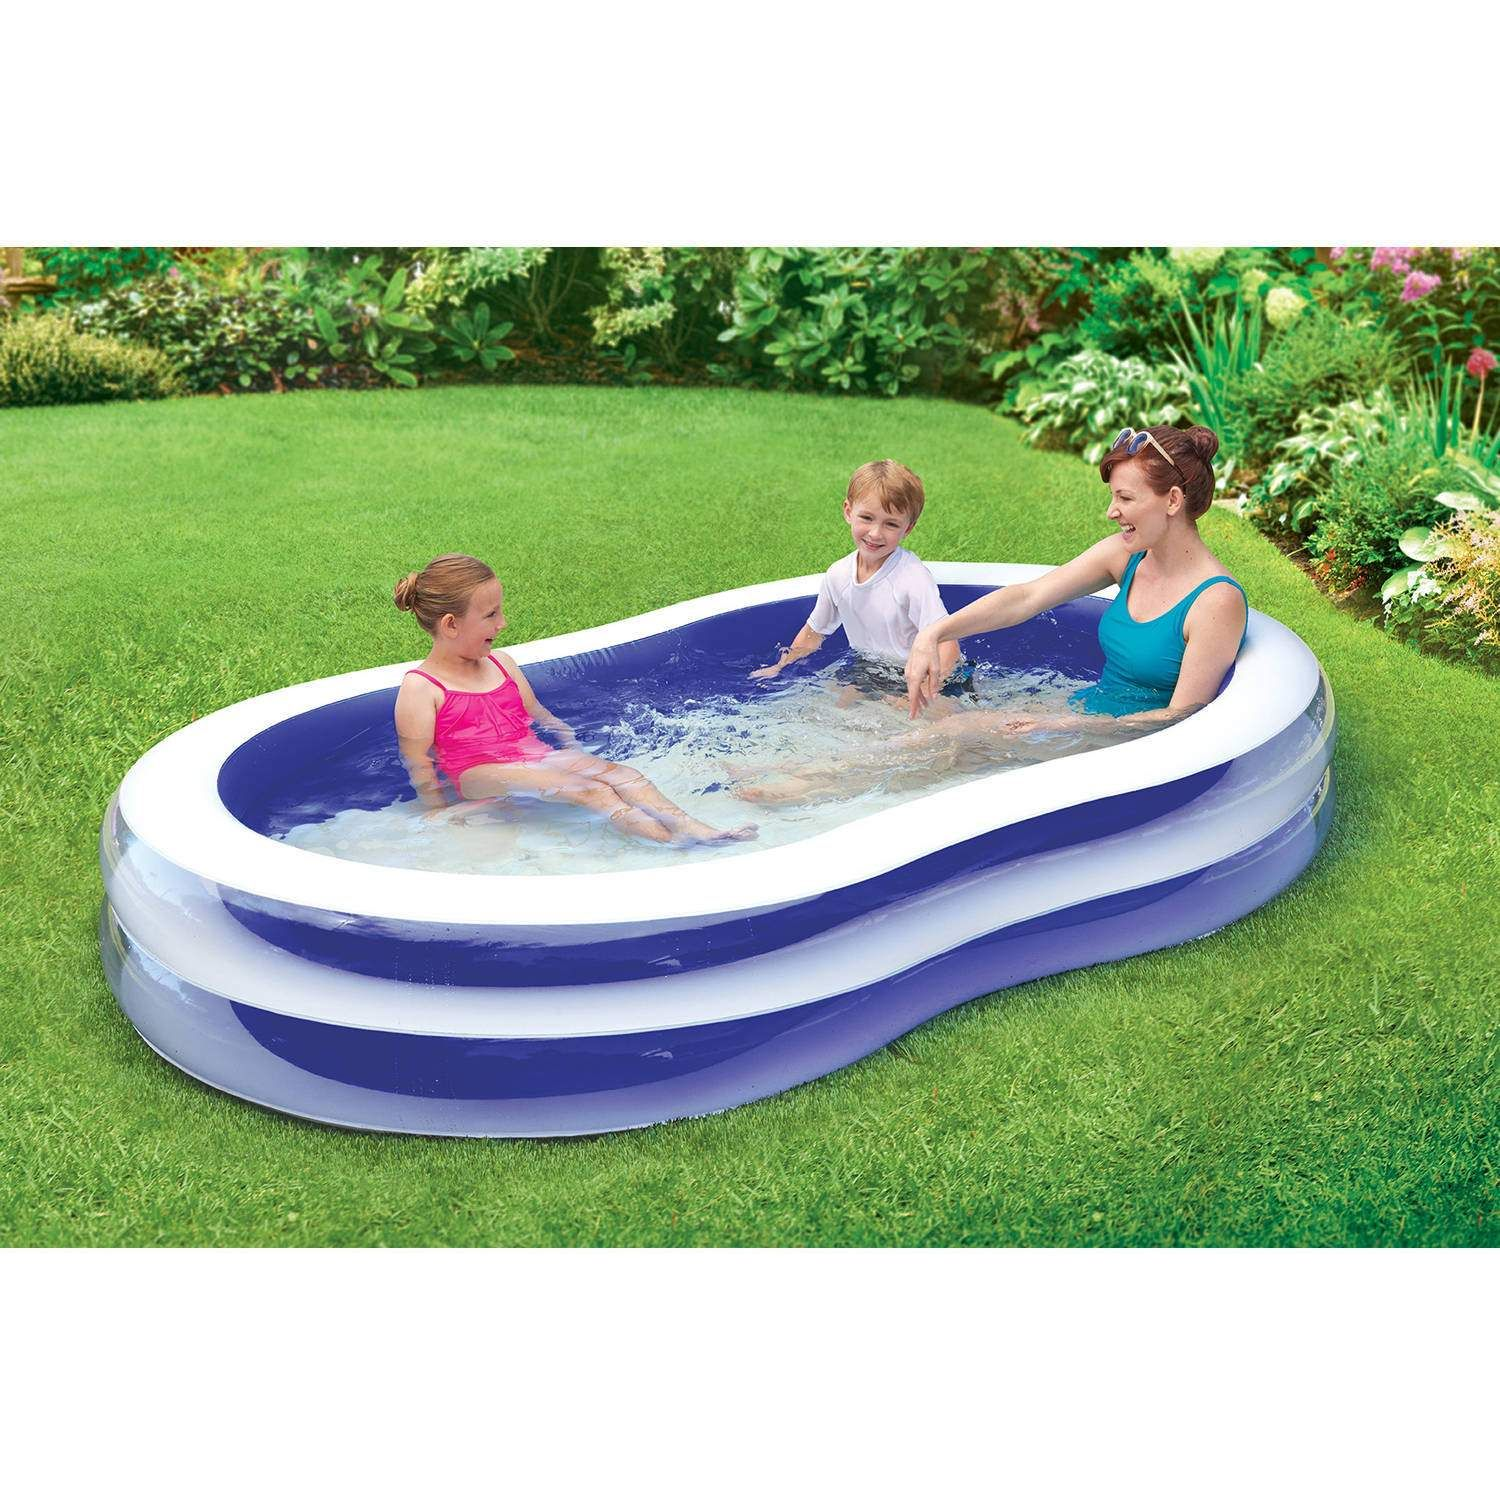 Deals On Twitter Family Pool Family Lounge Pool Children Swimming Pool